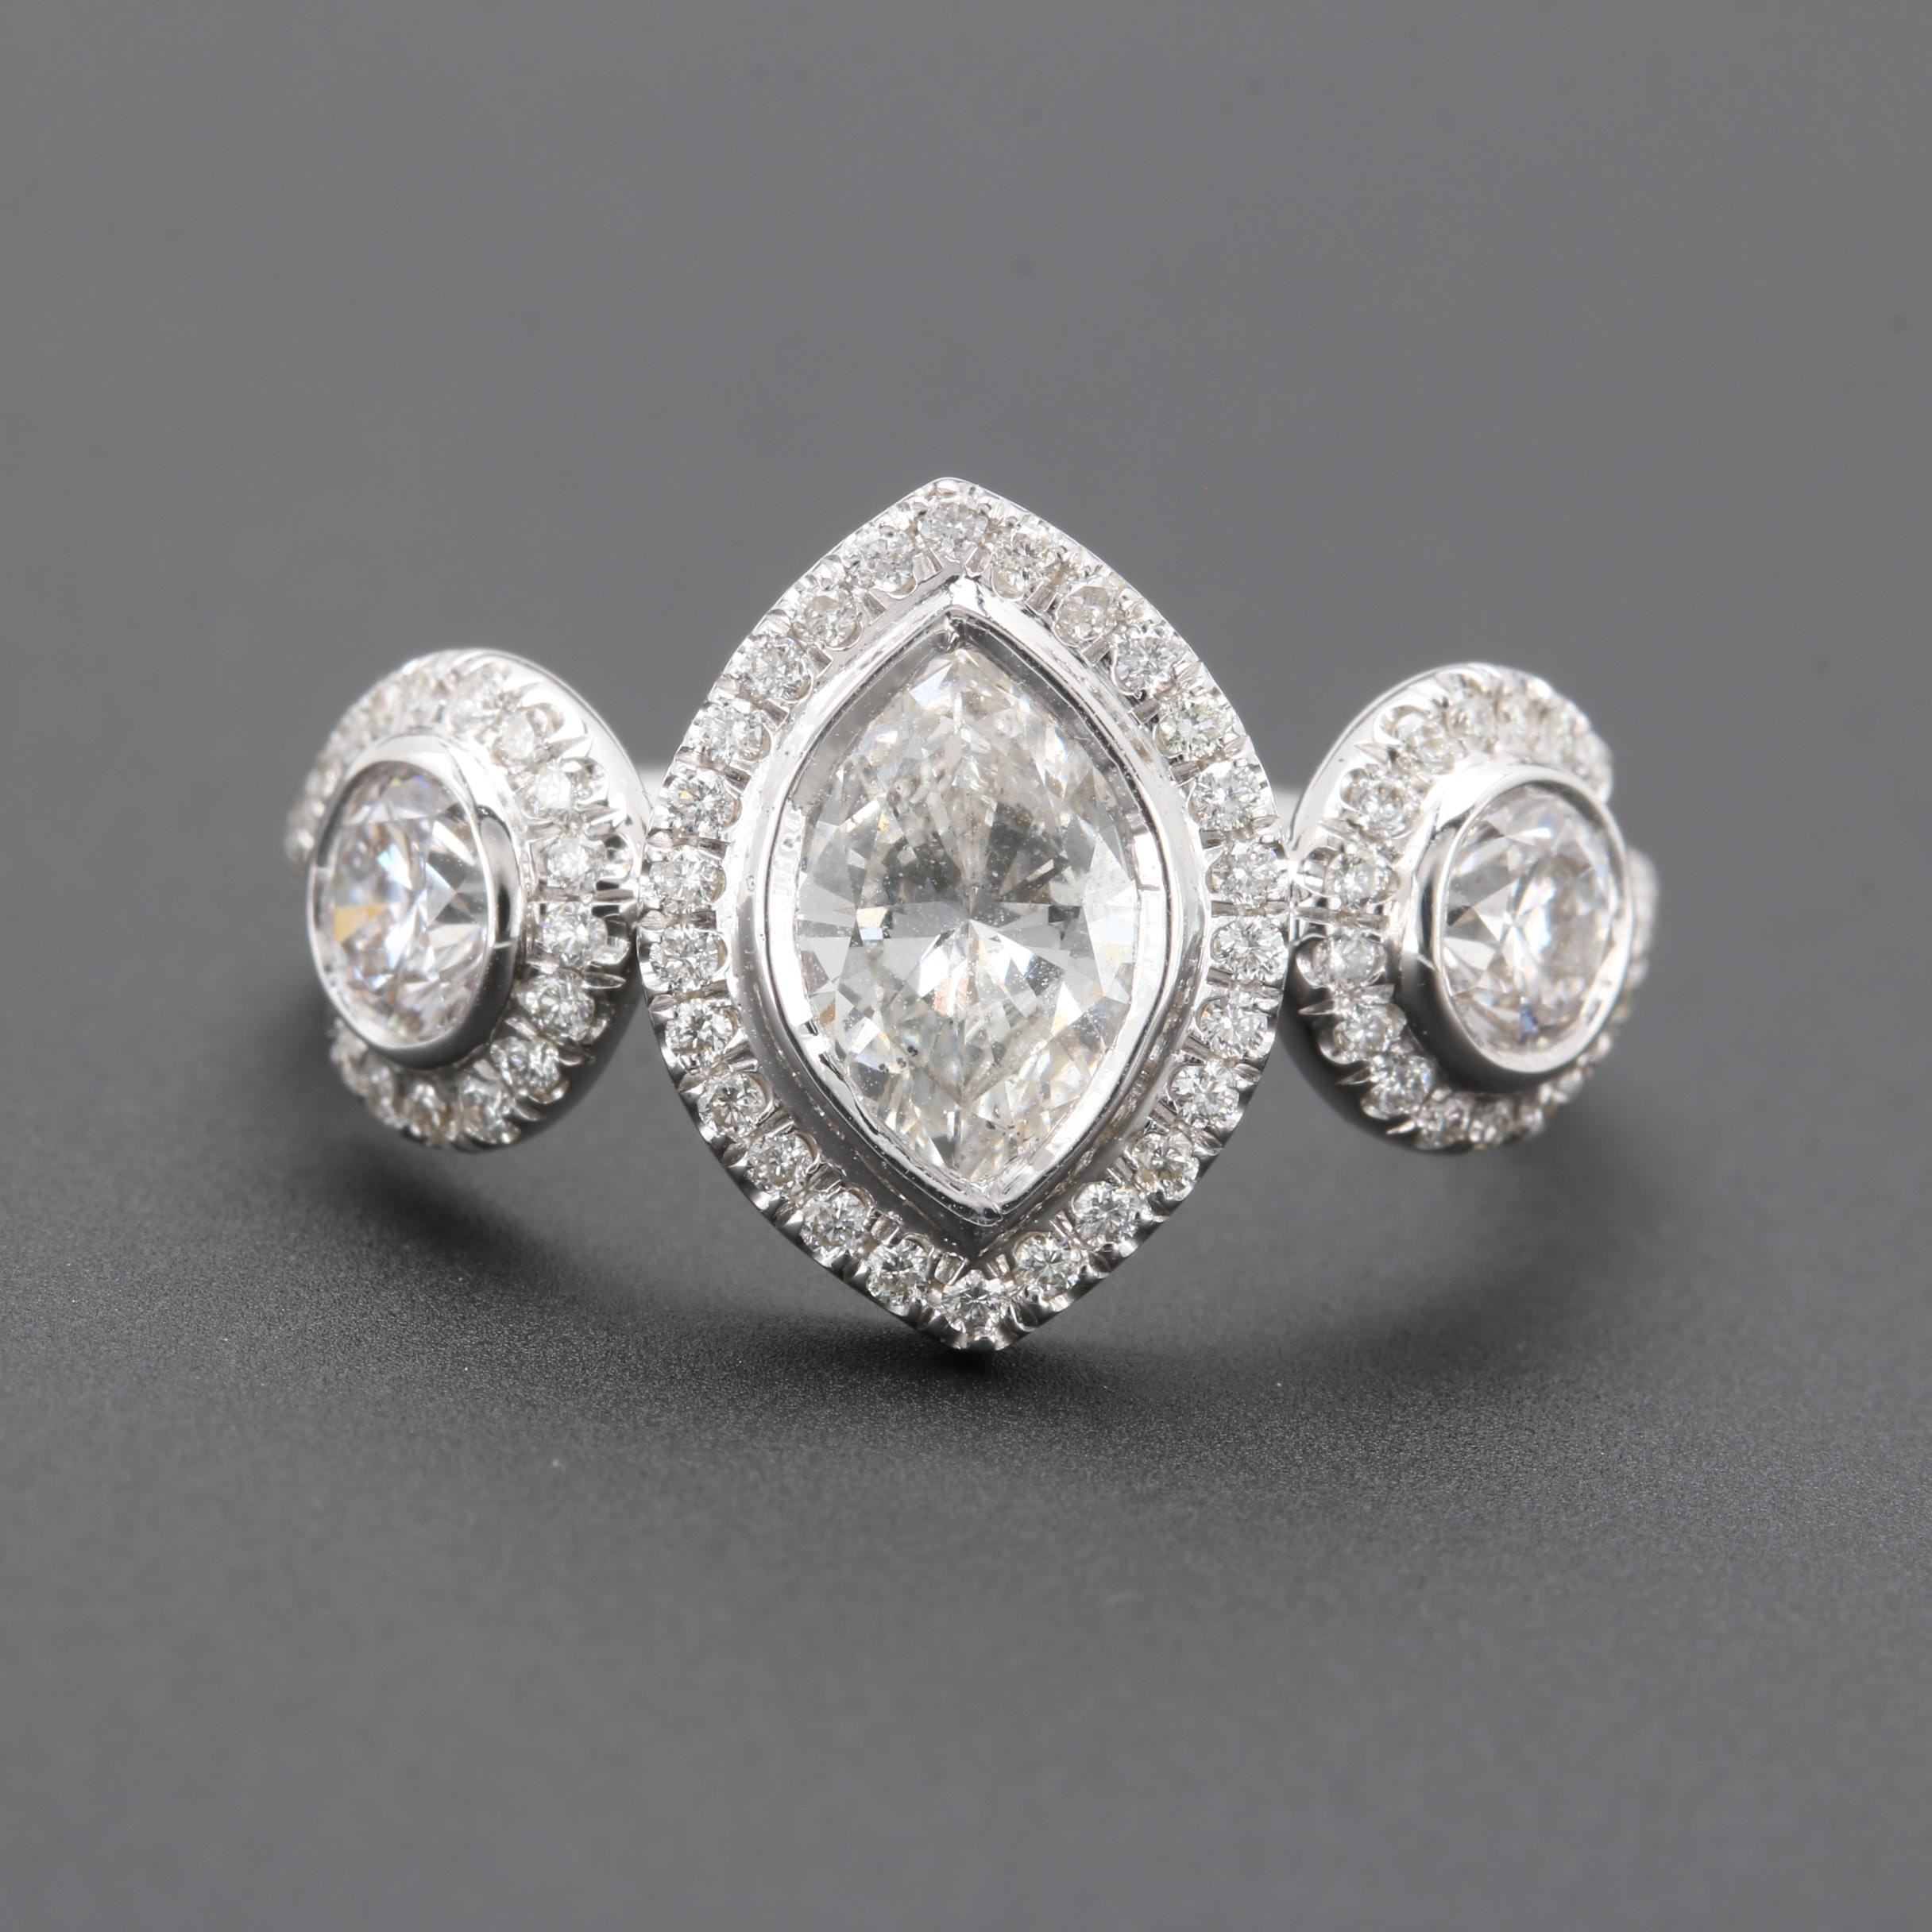 18K White Gold 1.46 CTW Diamond Ring